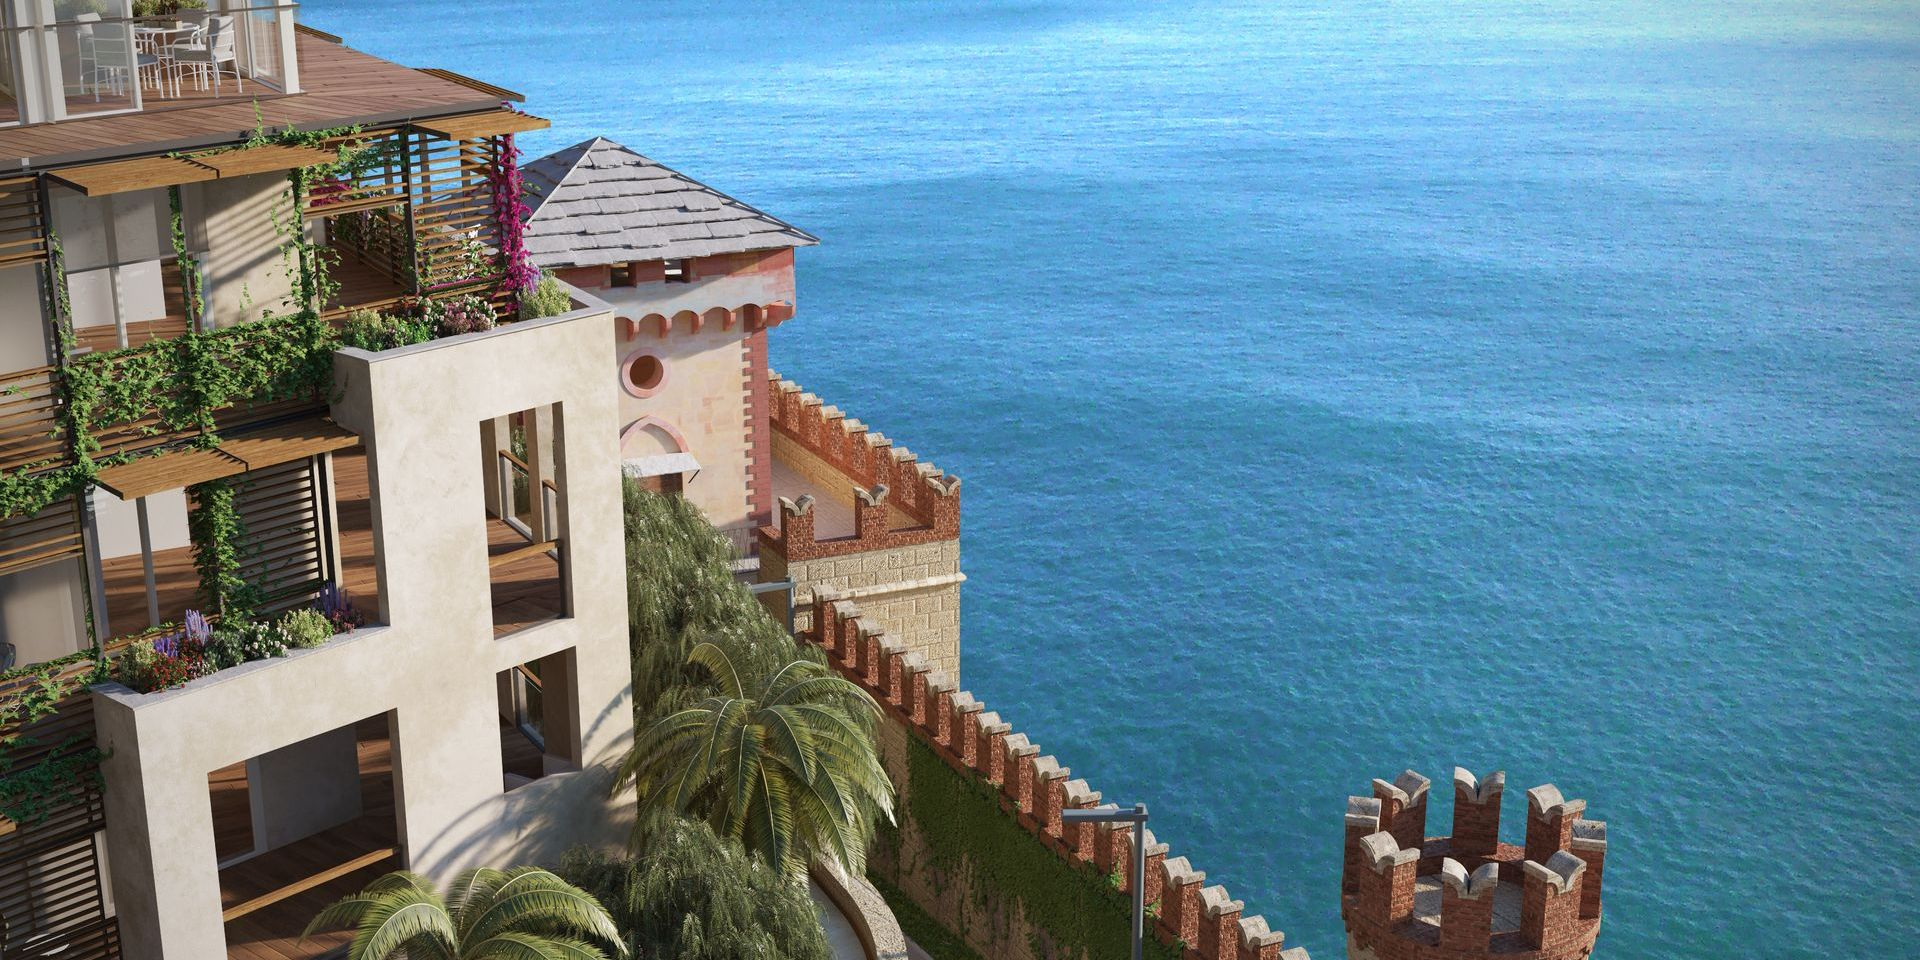 Liguria villas for sale